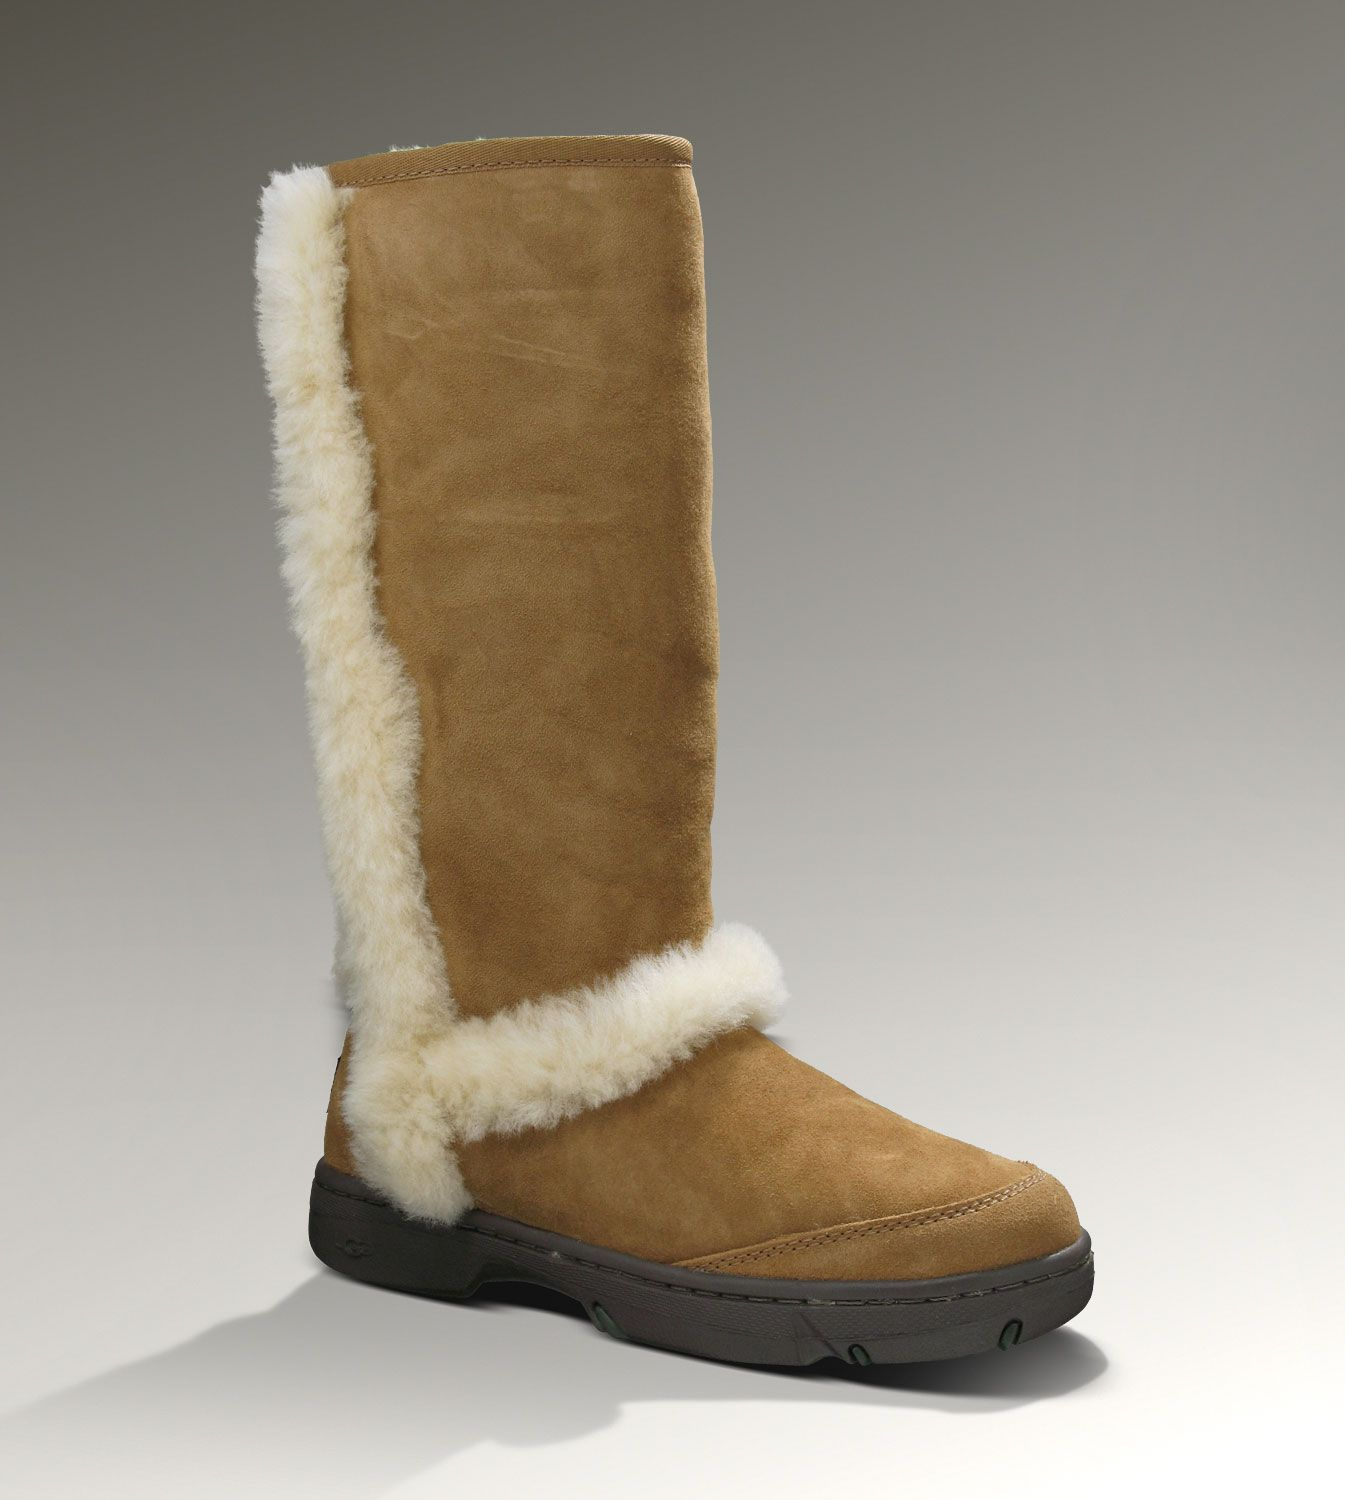 sunburst uggs for cheap